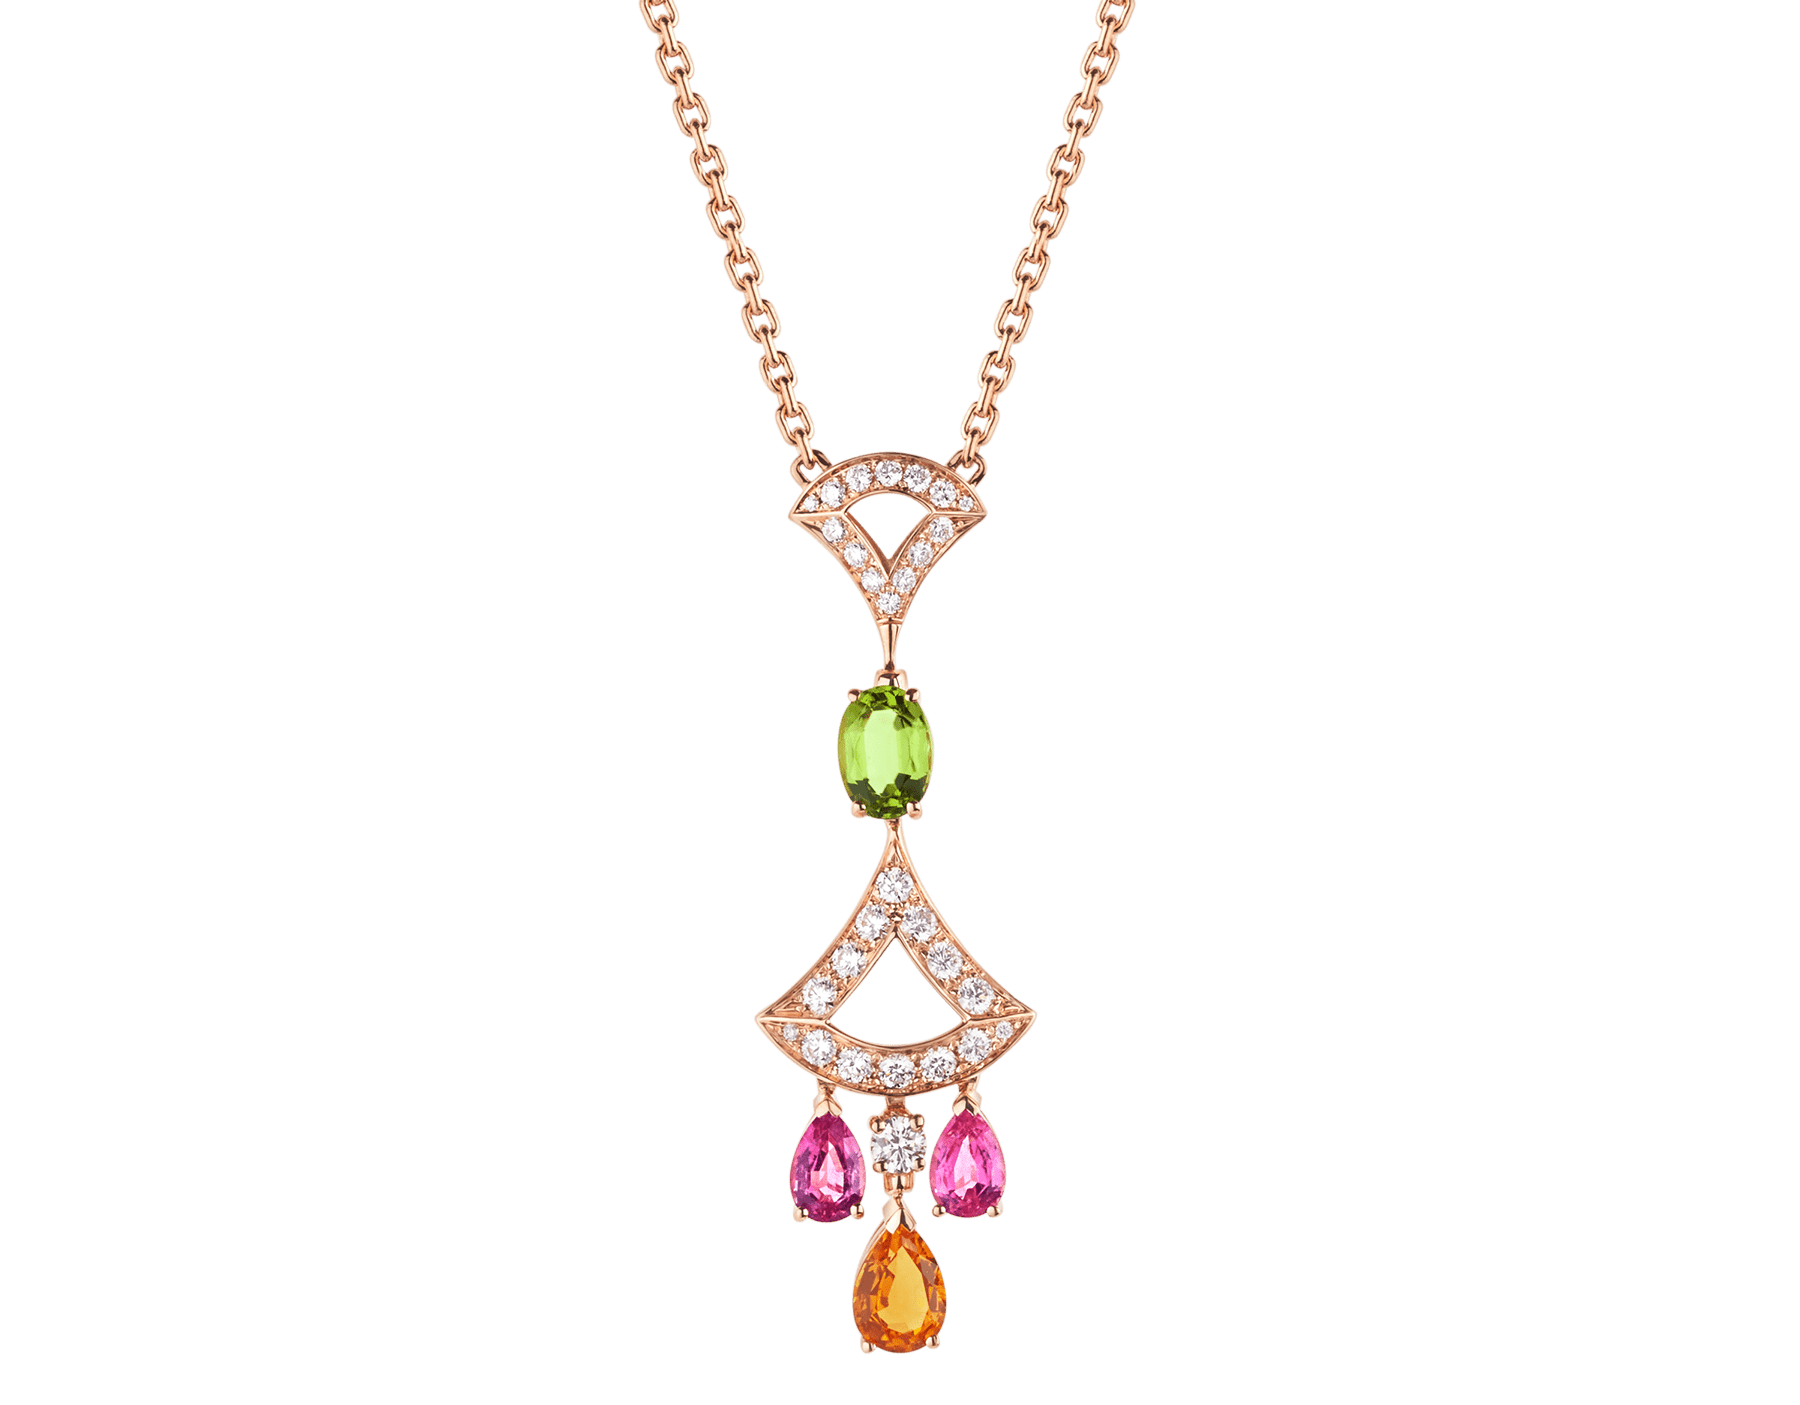 DIVAS' DREAM 18 kt rose gold necklace set with coloured gemstones, a brlliant-cut diamond and pavé diamonds 355613 image 1